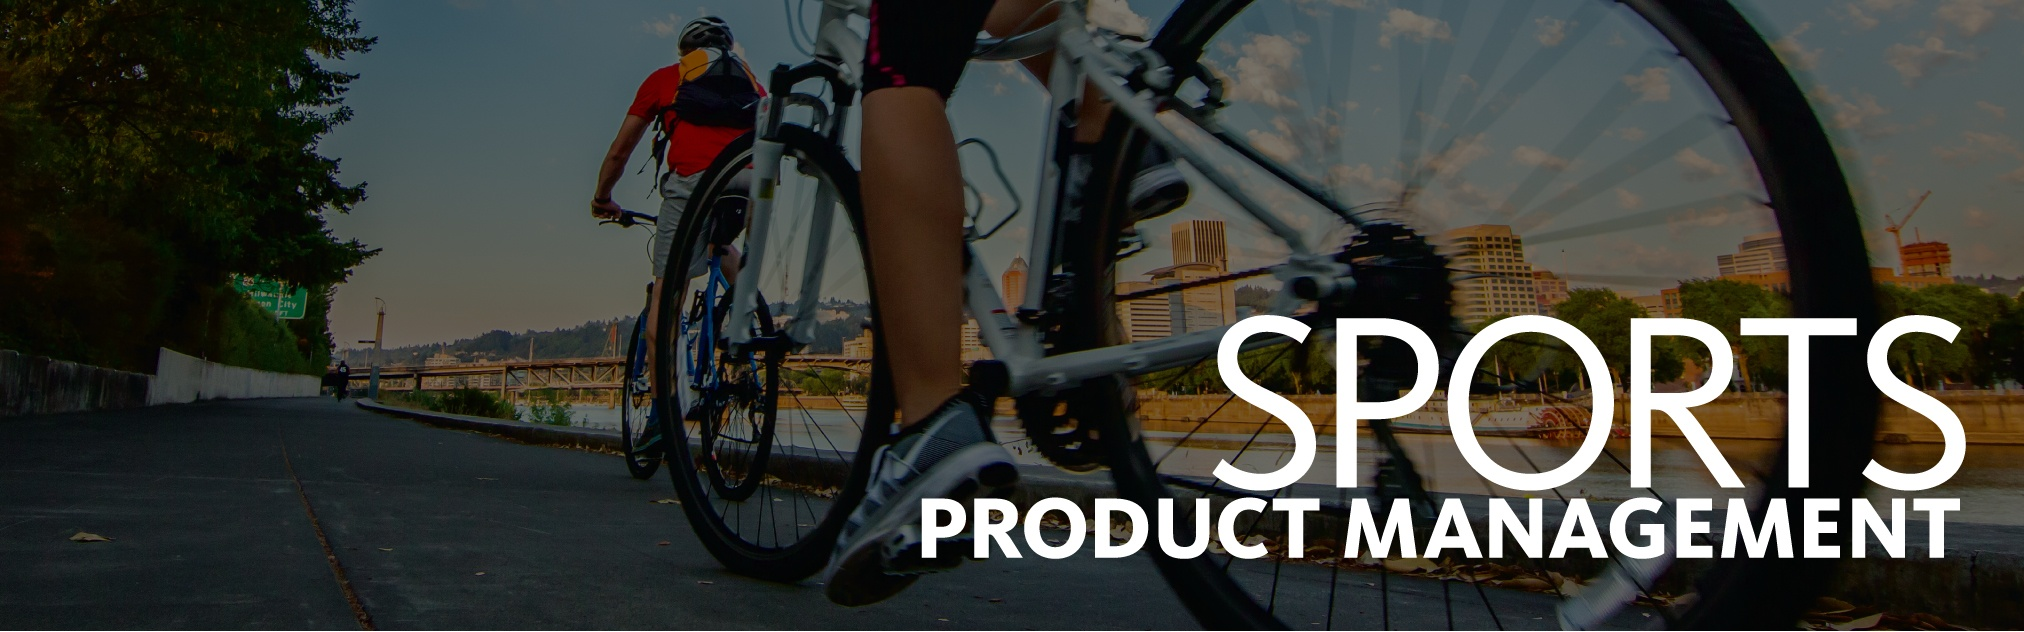 Sports Product Management Image with Bikers in Porltand